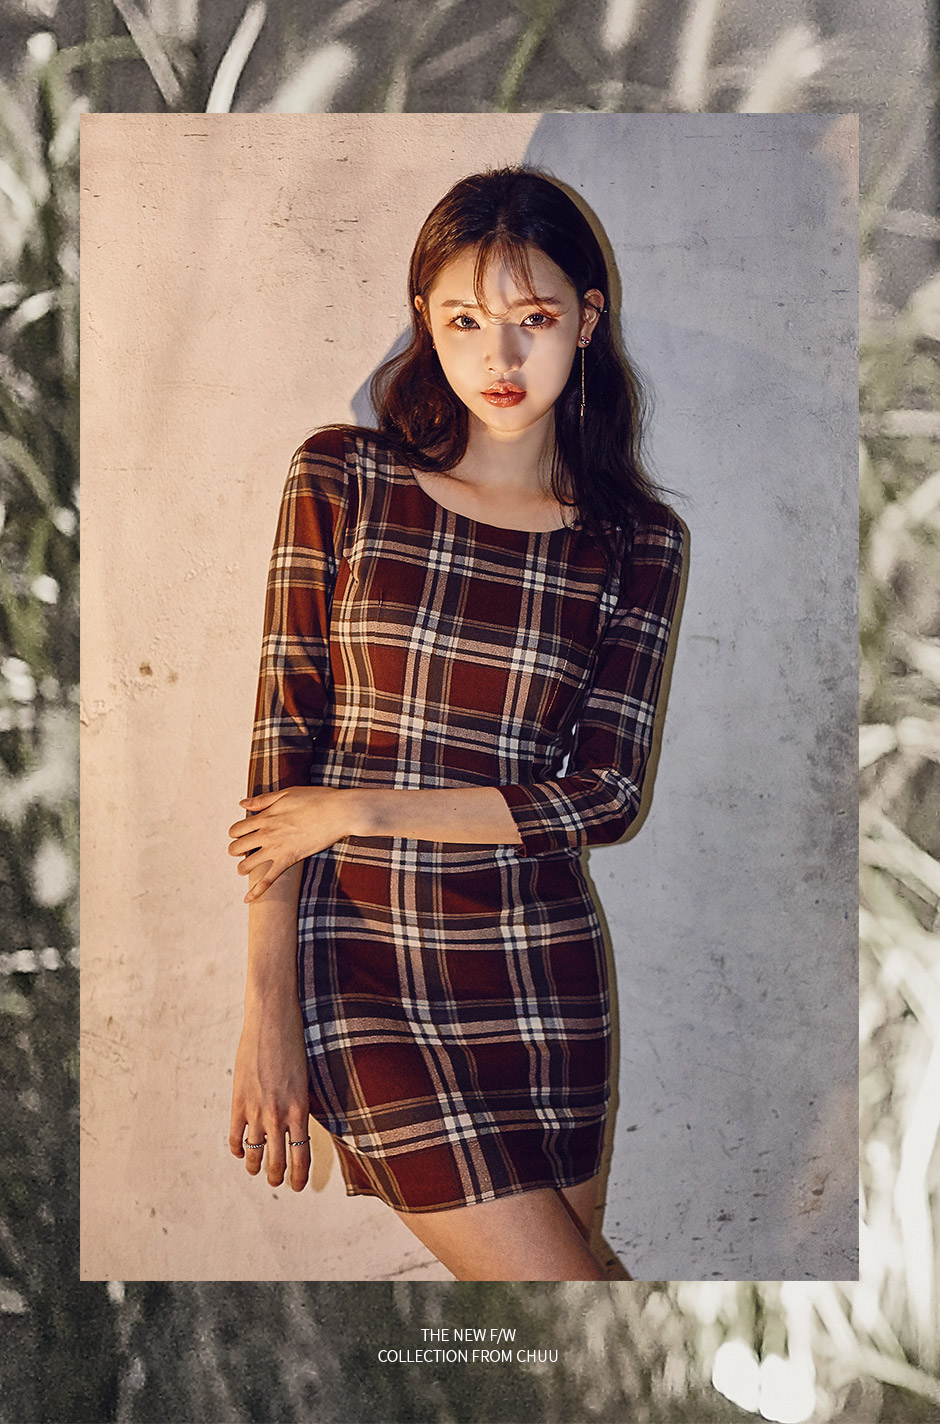 //cdn.nhanh.vn/cdn/store/29770/psCT/20181003/9325580/CHUU_Crop_Sleeve_Basic_Check_Dress_(19).jpg